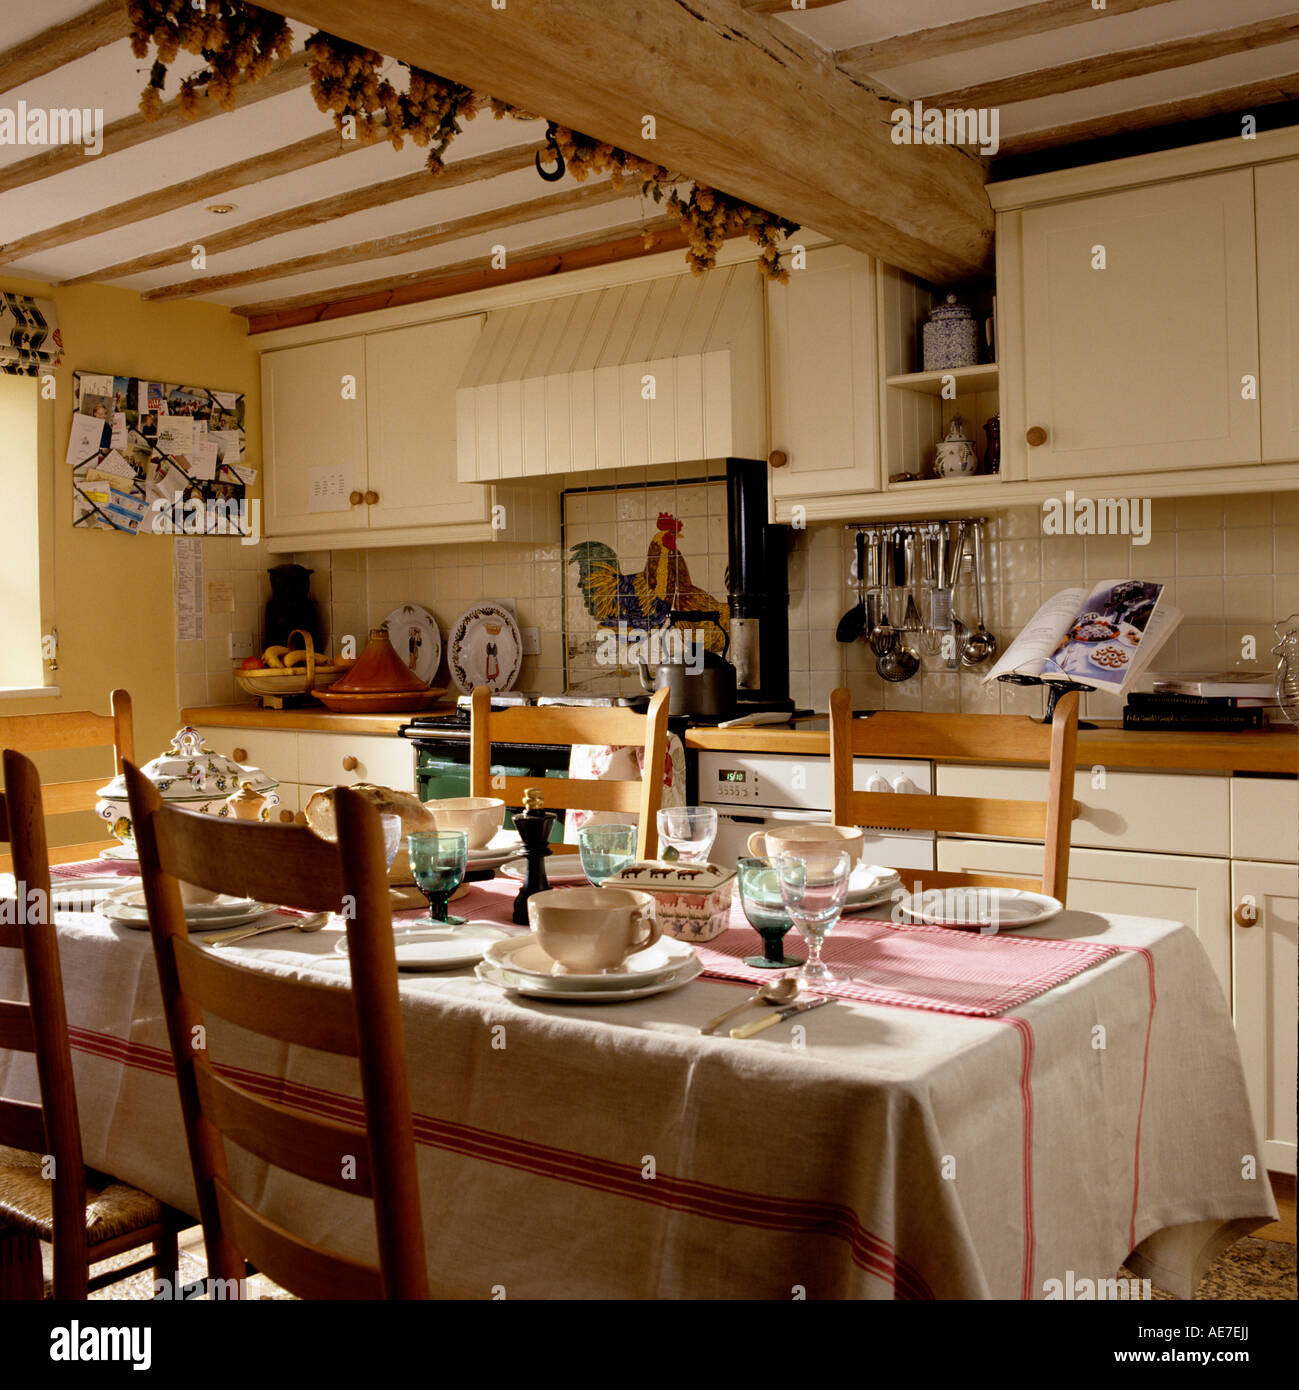 Country Kitchen Of An English Cottage With Wooden Beams